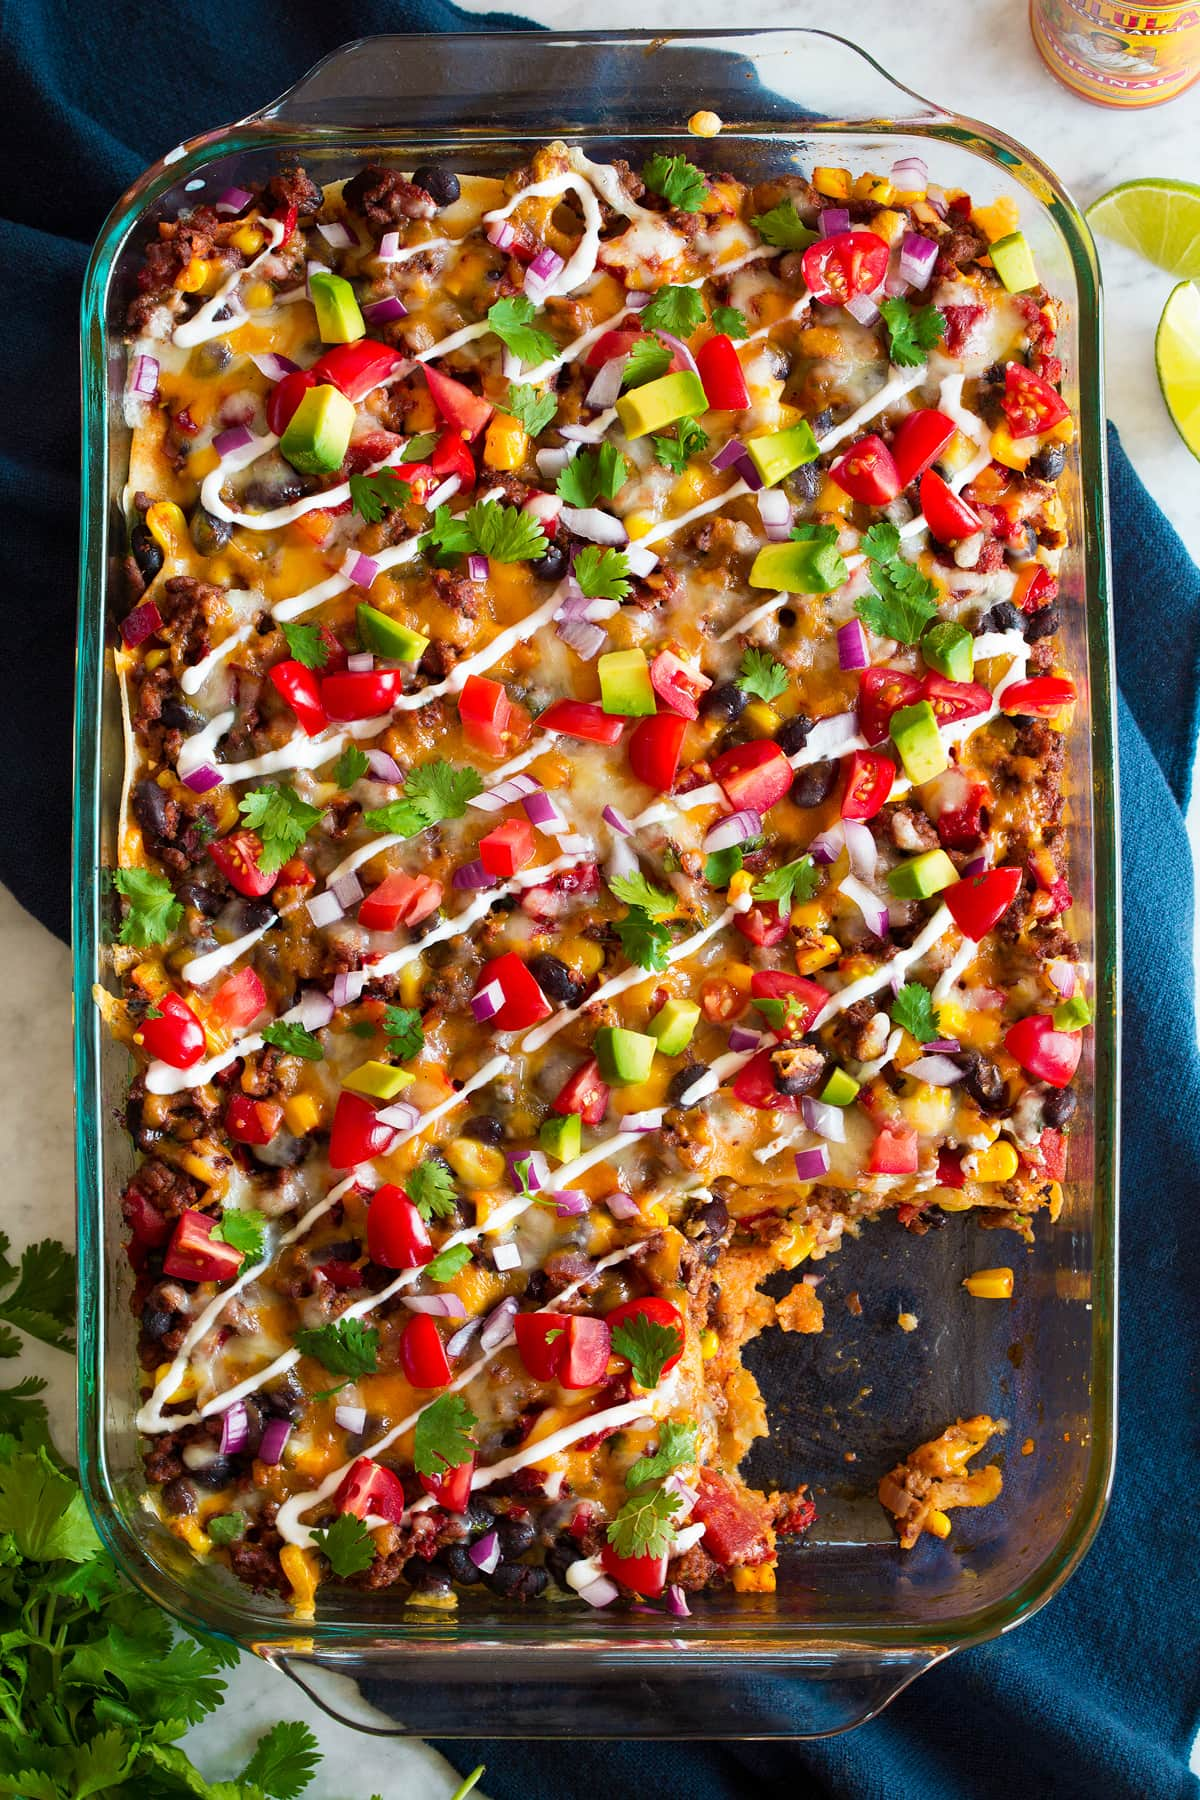 Overhead image of taco casserole in glass baking dish set over a blue cloth.